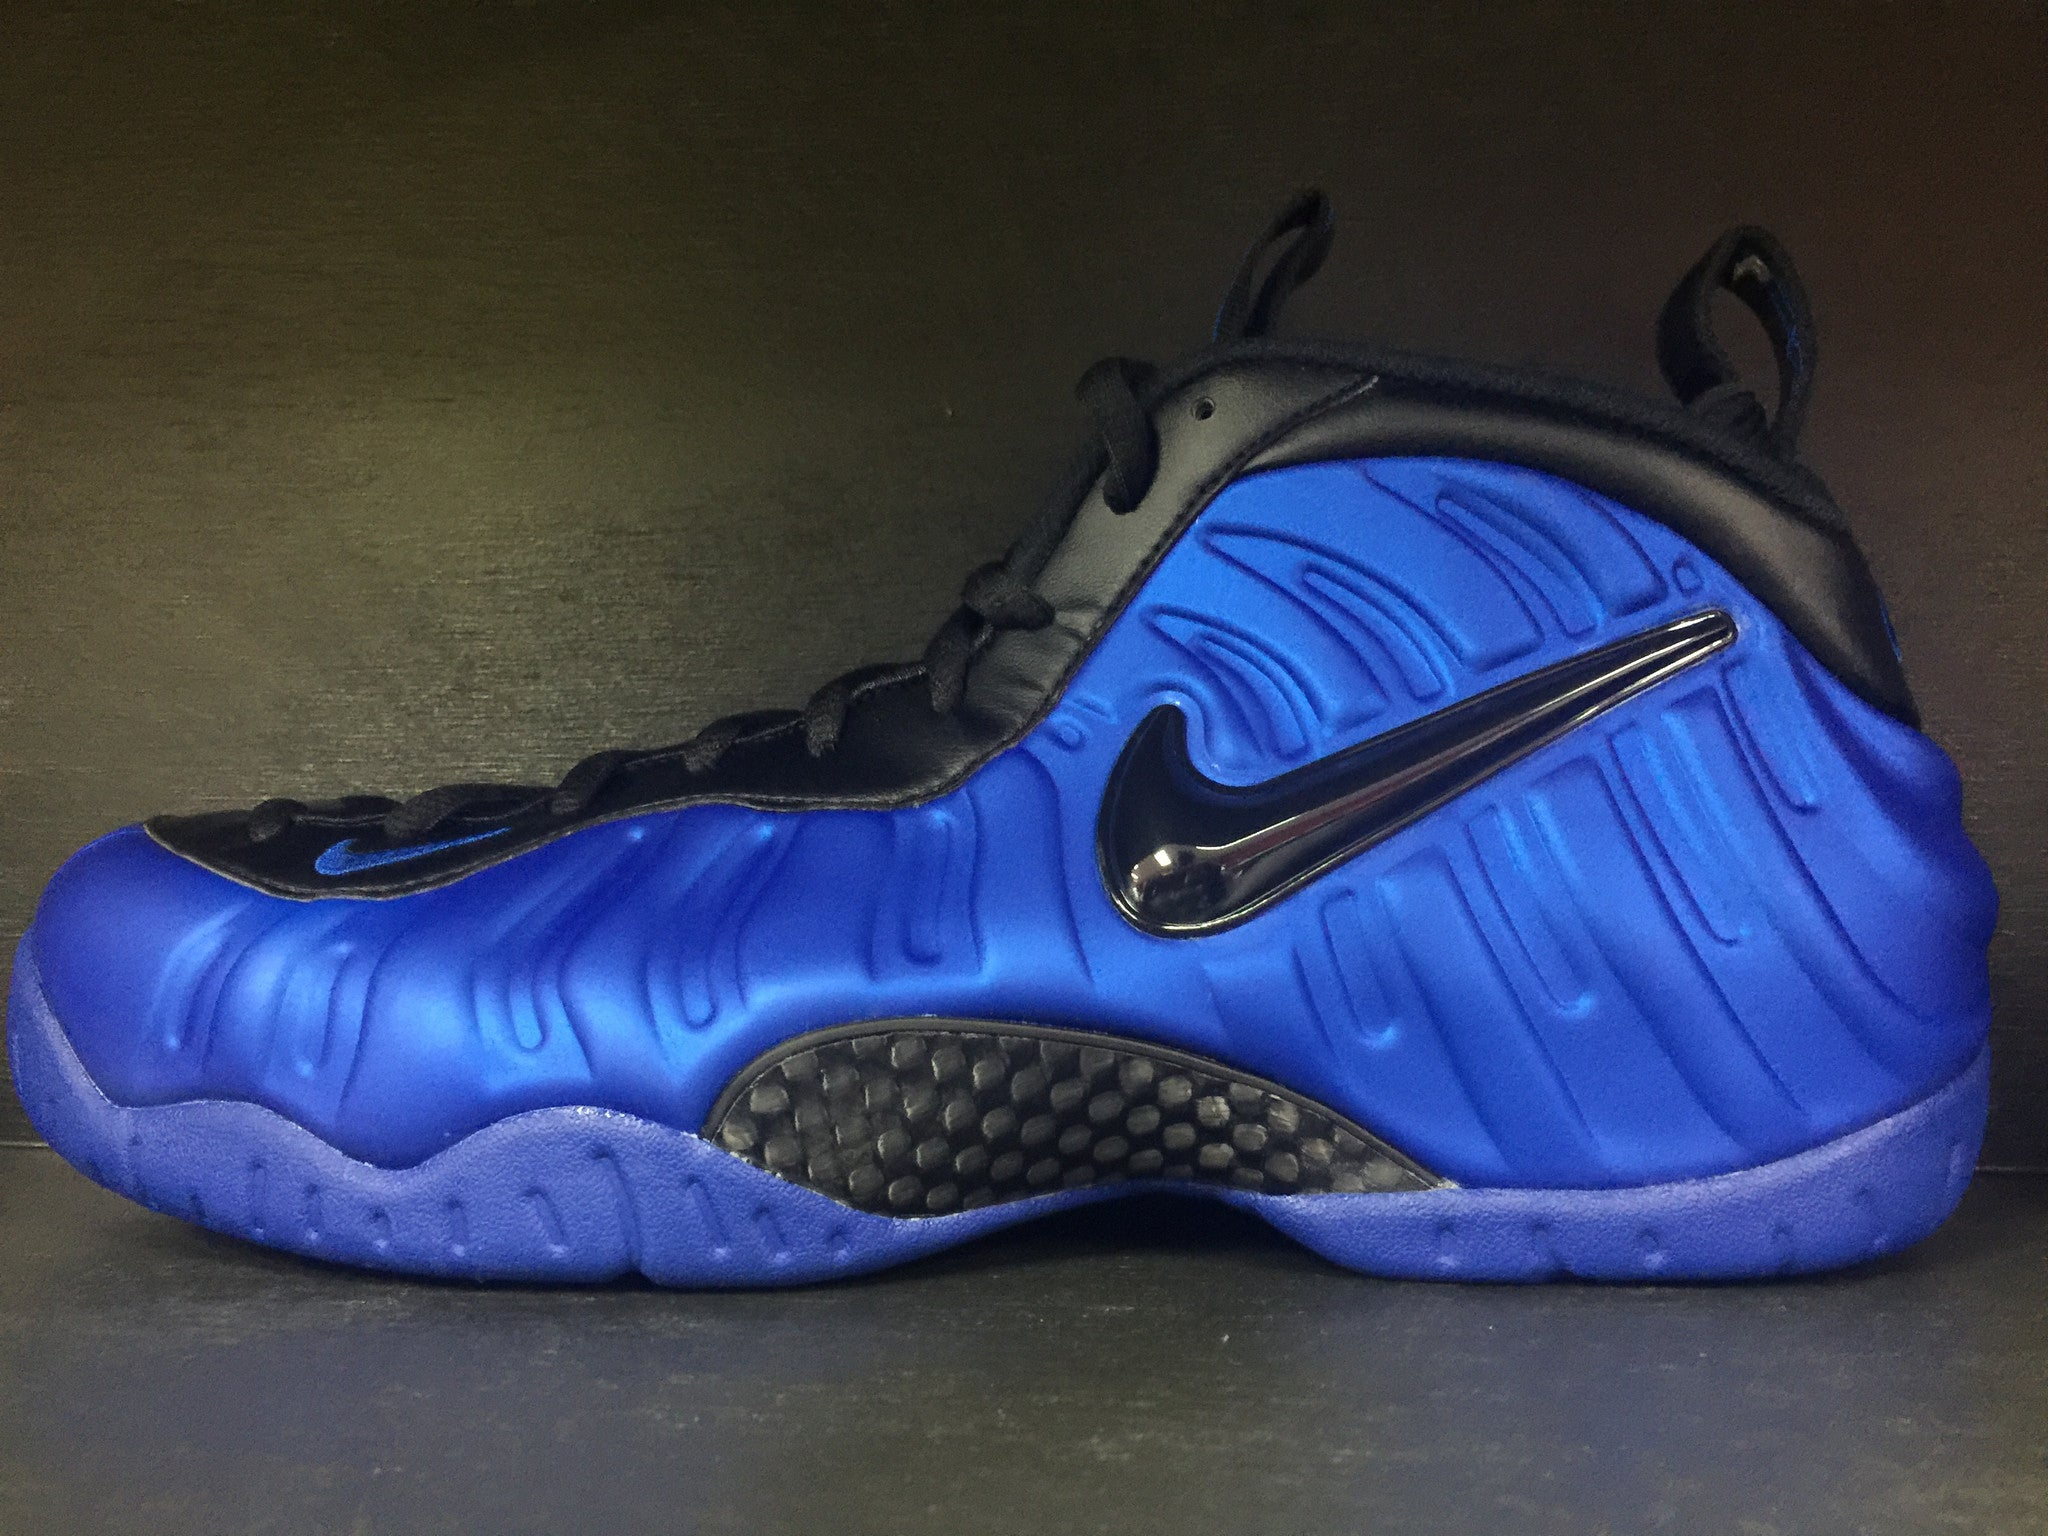 Nike Air Foamposite Pro 'Varsity Royal'